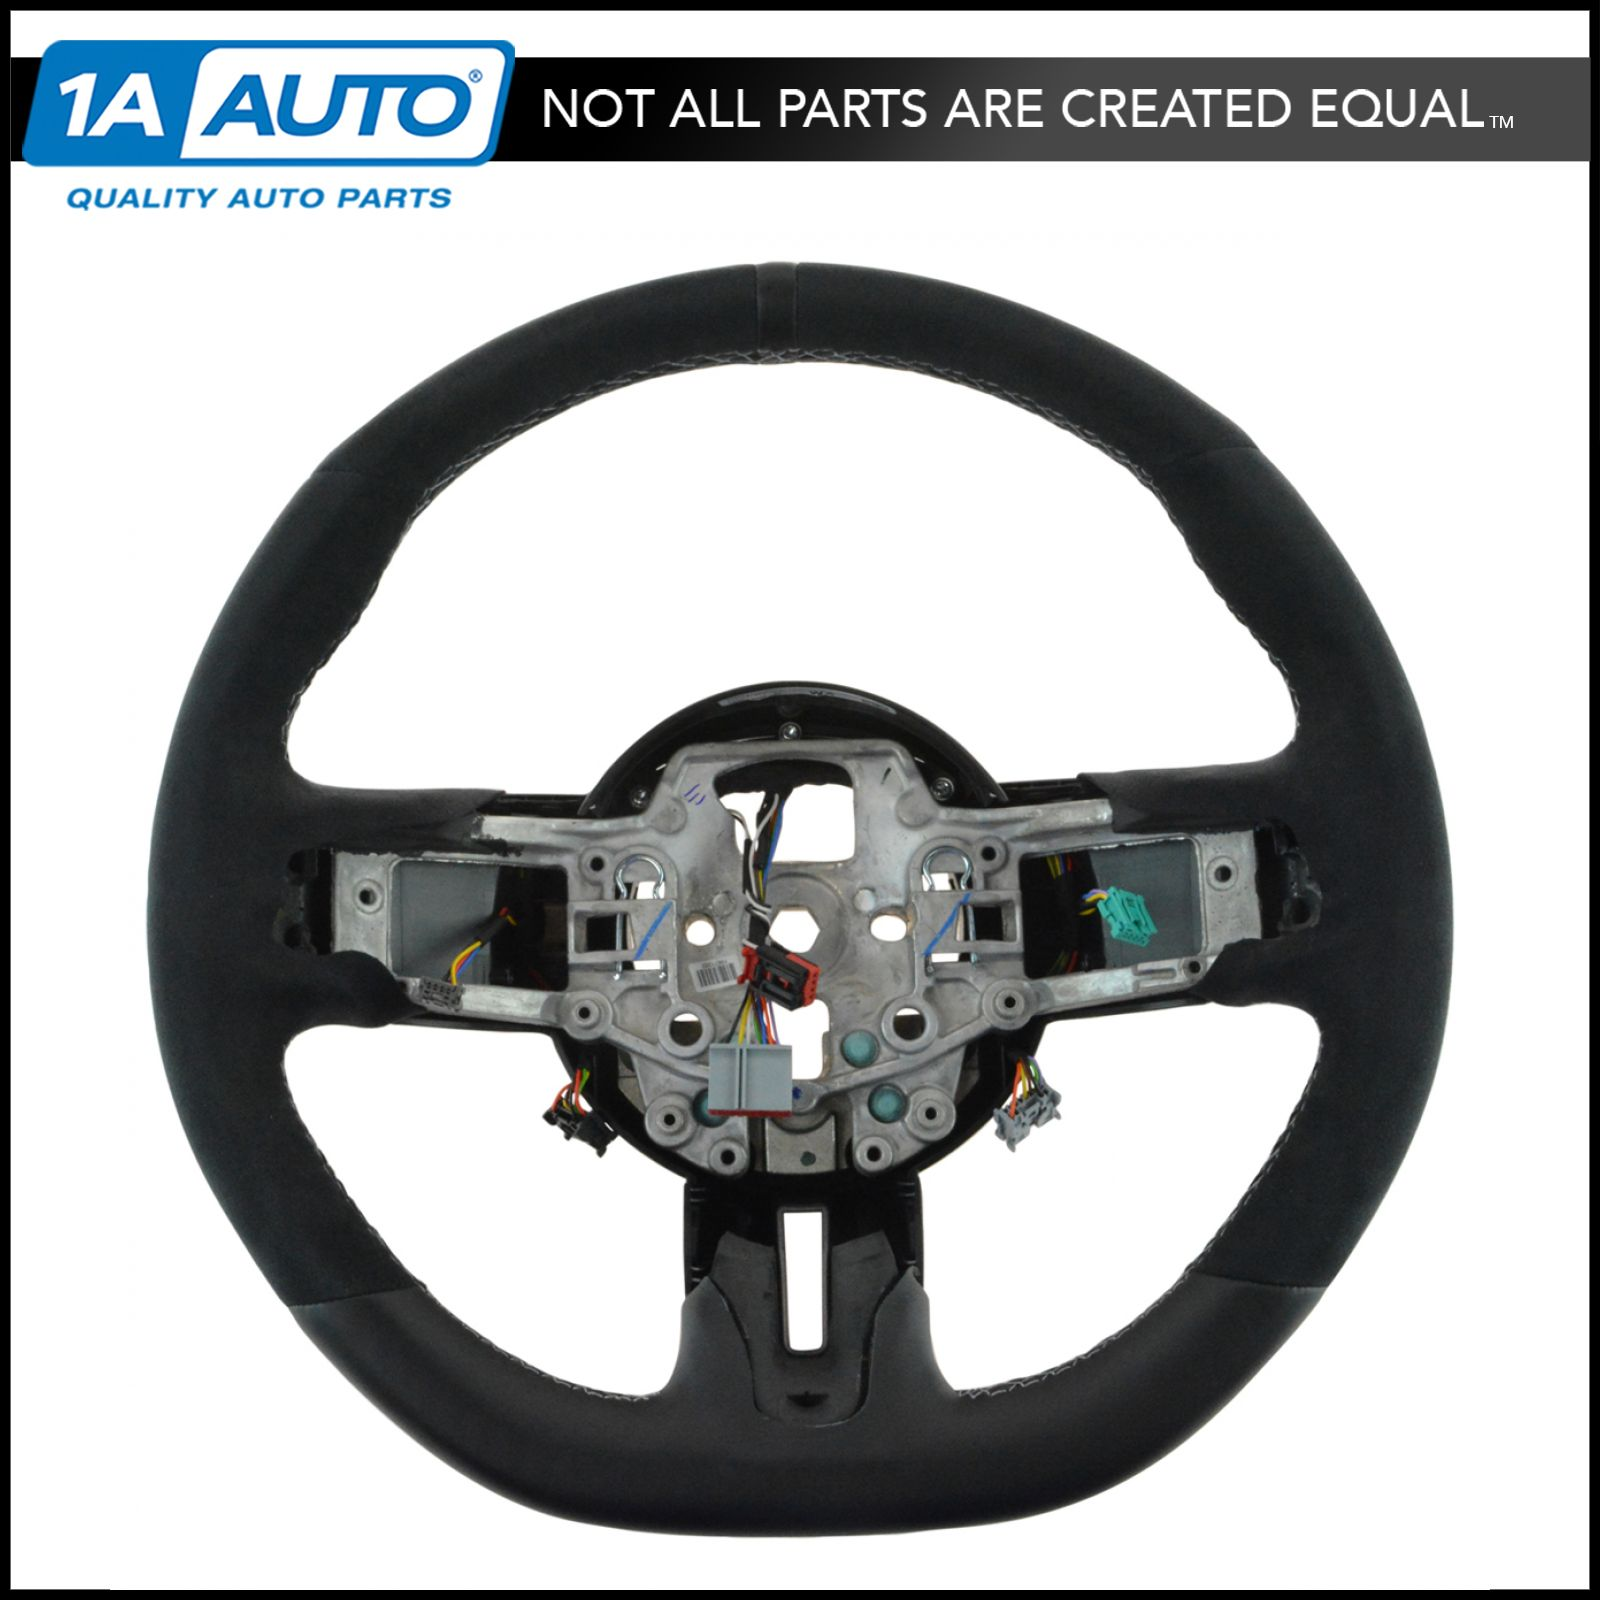 Details about oem fr3z3600ac steering wheel alcantara suede leather for ford mustang gt350